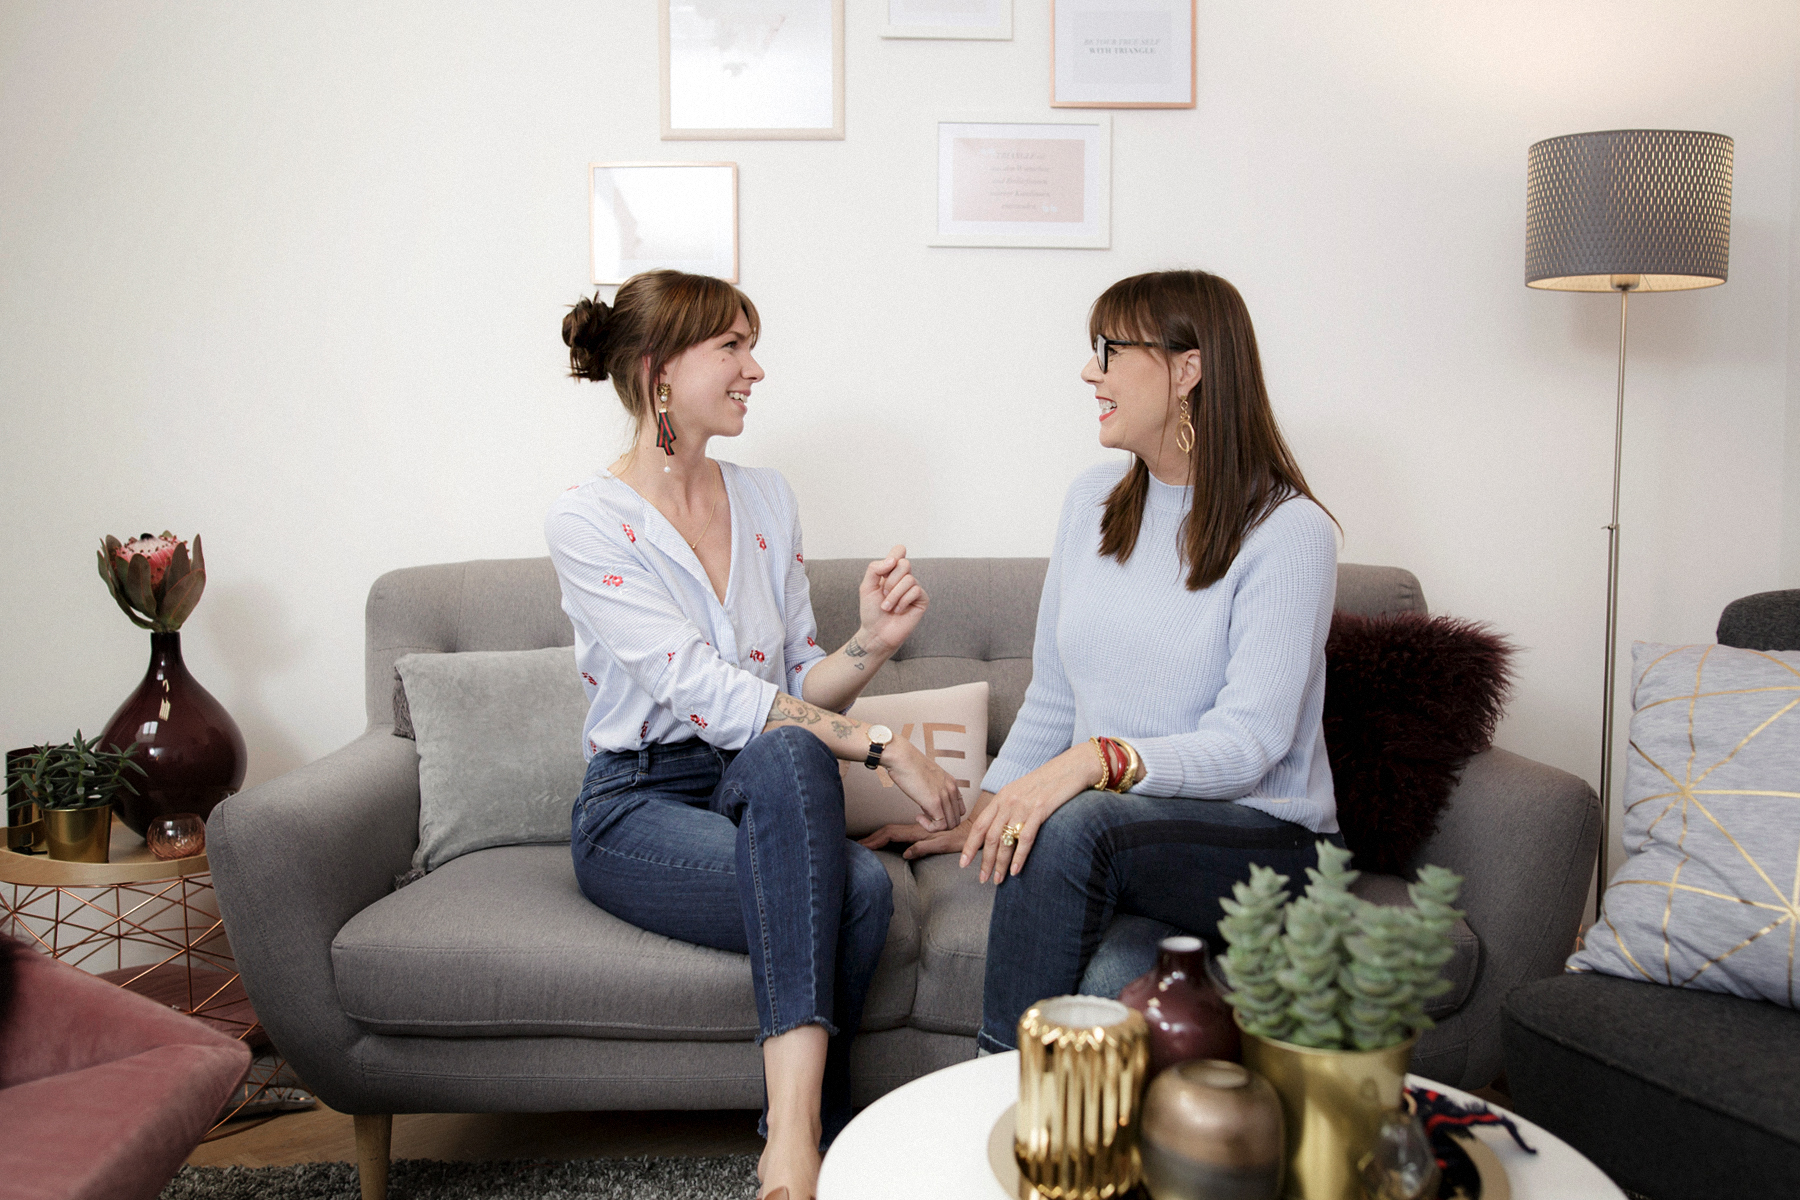 triangle interview business for fashion girls talk fashionblogger rosegold grey minimal scandi style interior brunette bangs cute denim style baby blue cats & dogs modeblog  düsseldorf germany styleblogger outfitblogger ricarda schernus max bechmann 5